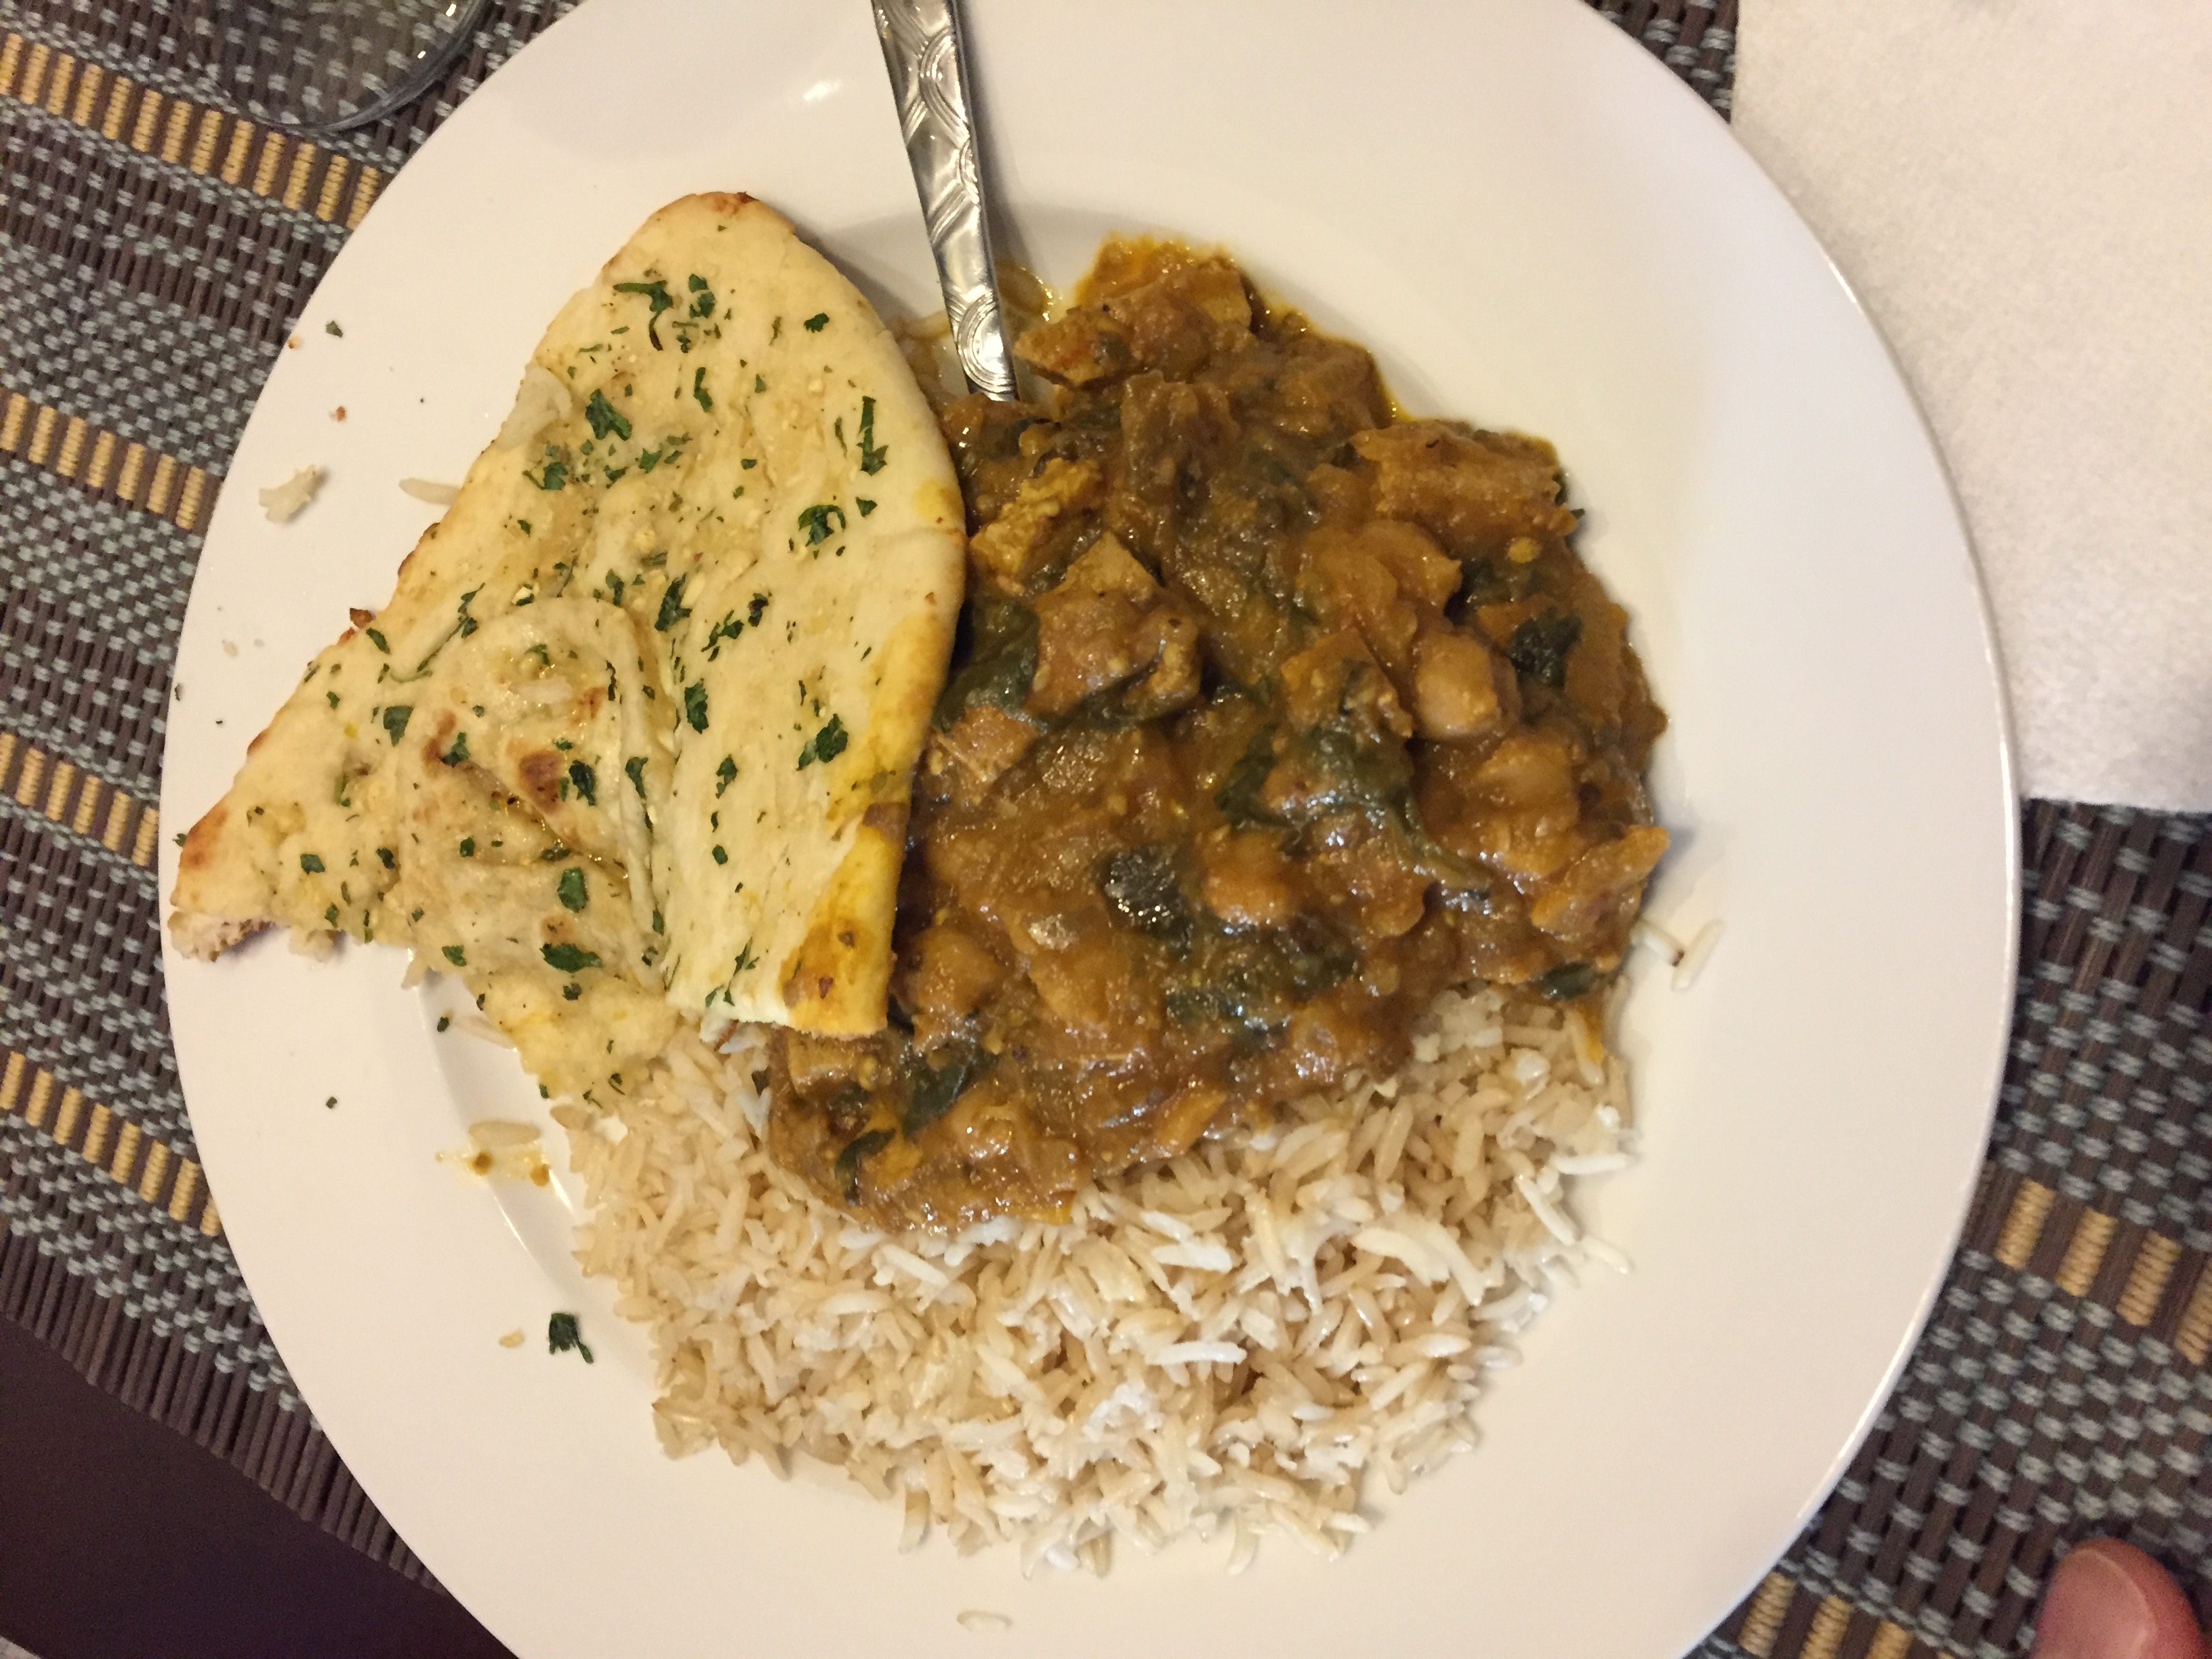 Exotic Brinjal (Spicy Eggplant) Nelly Nell